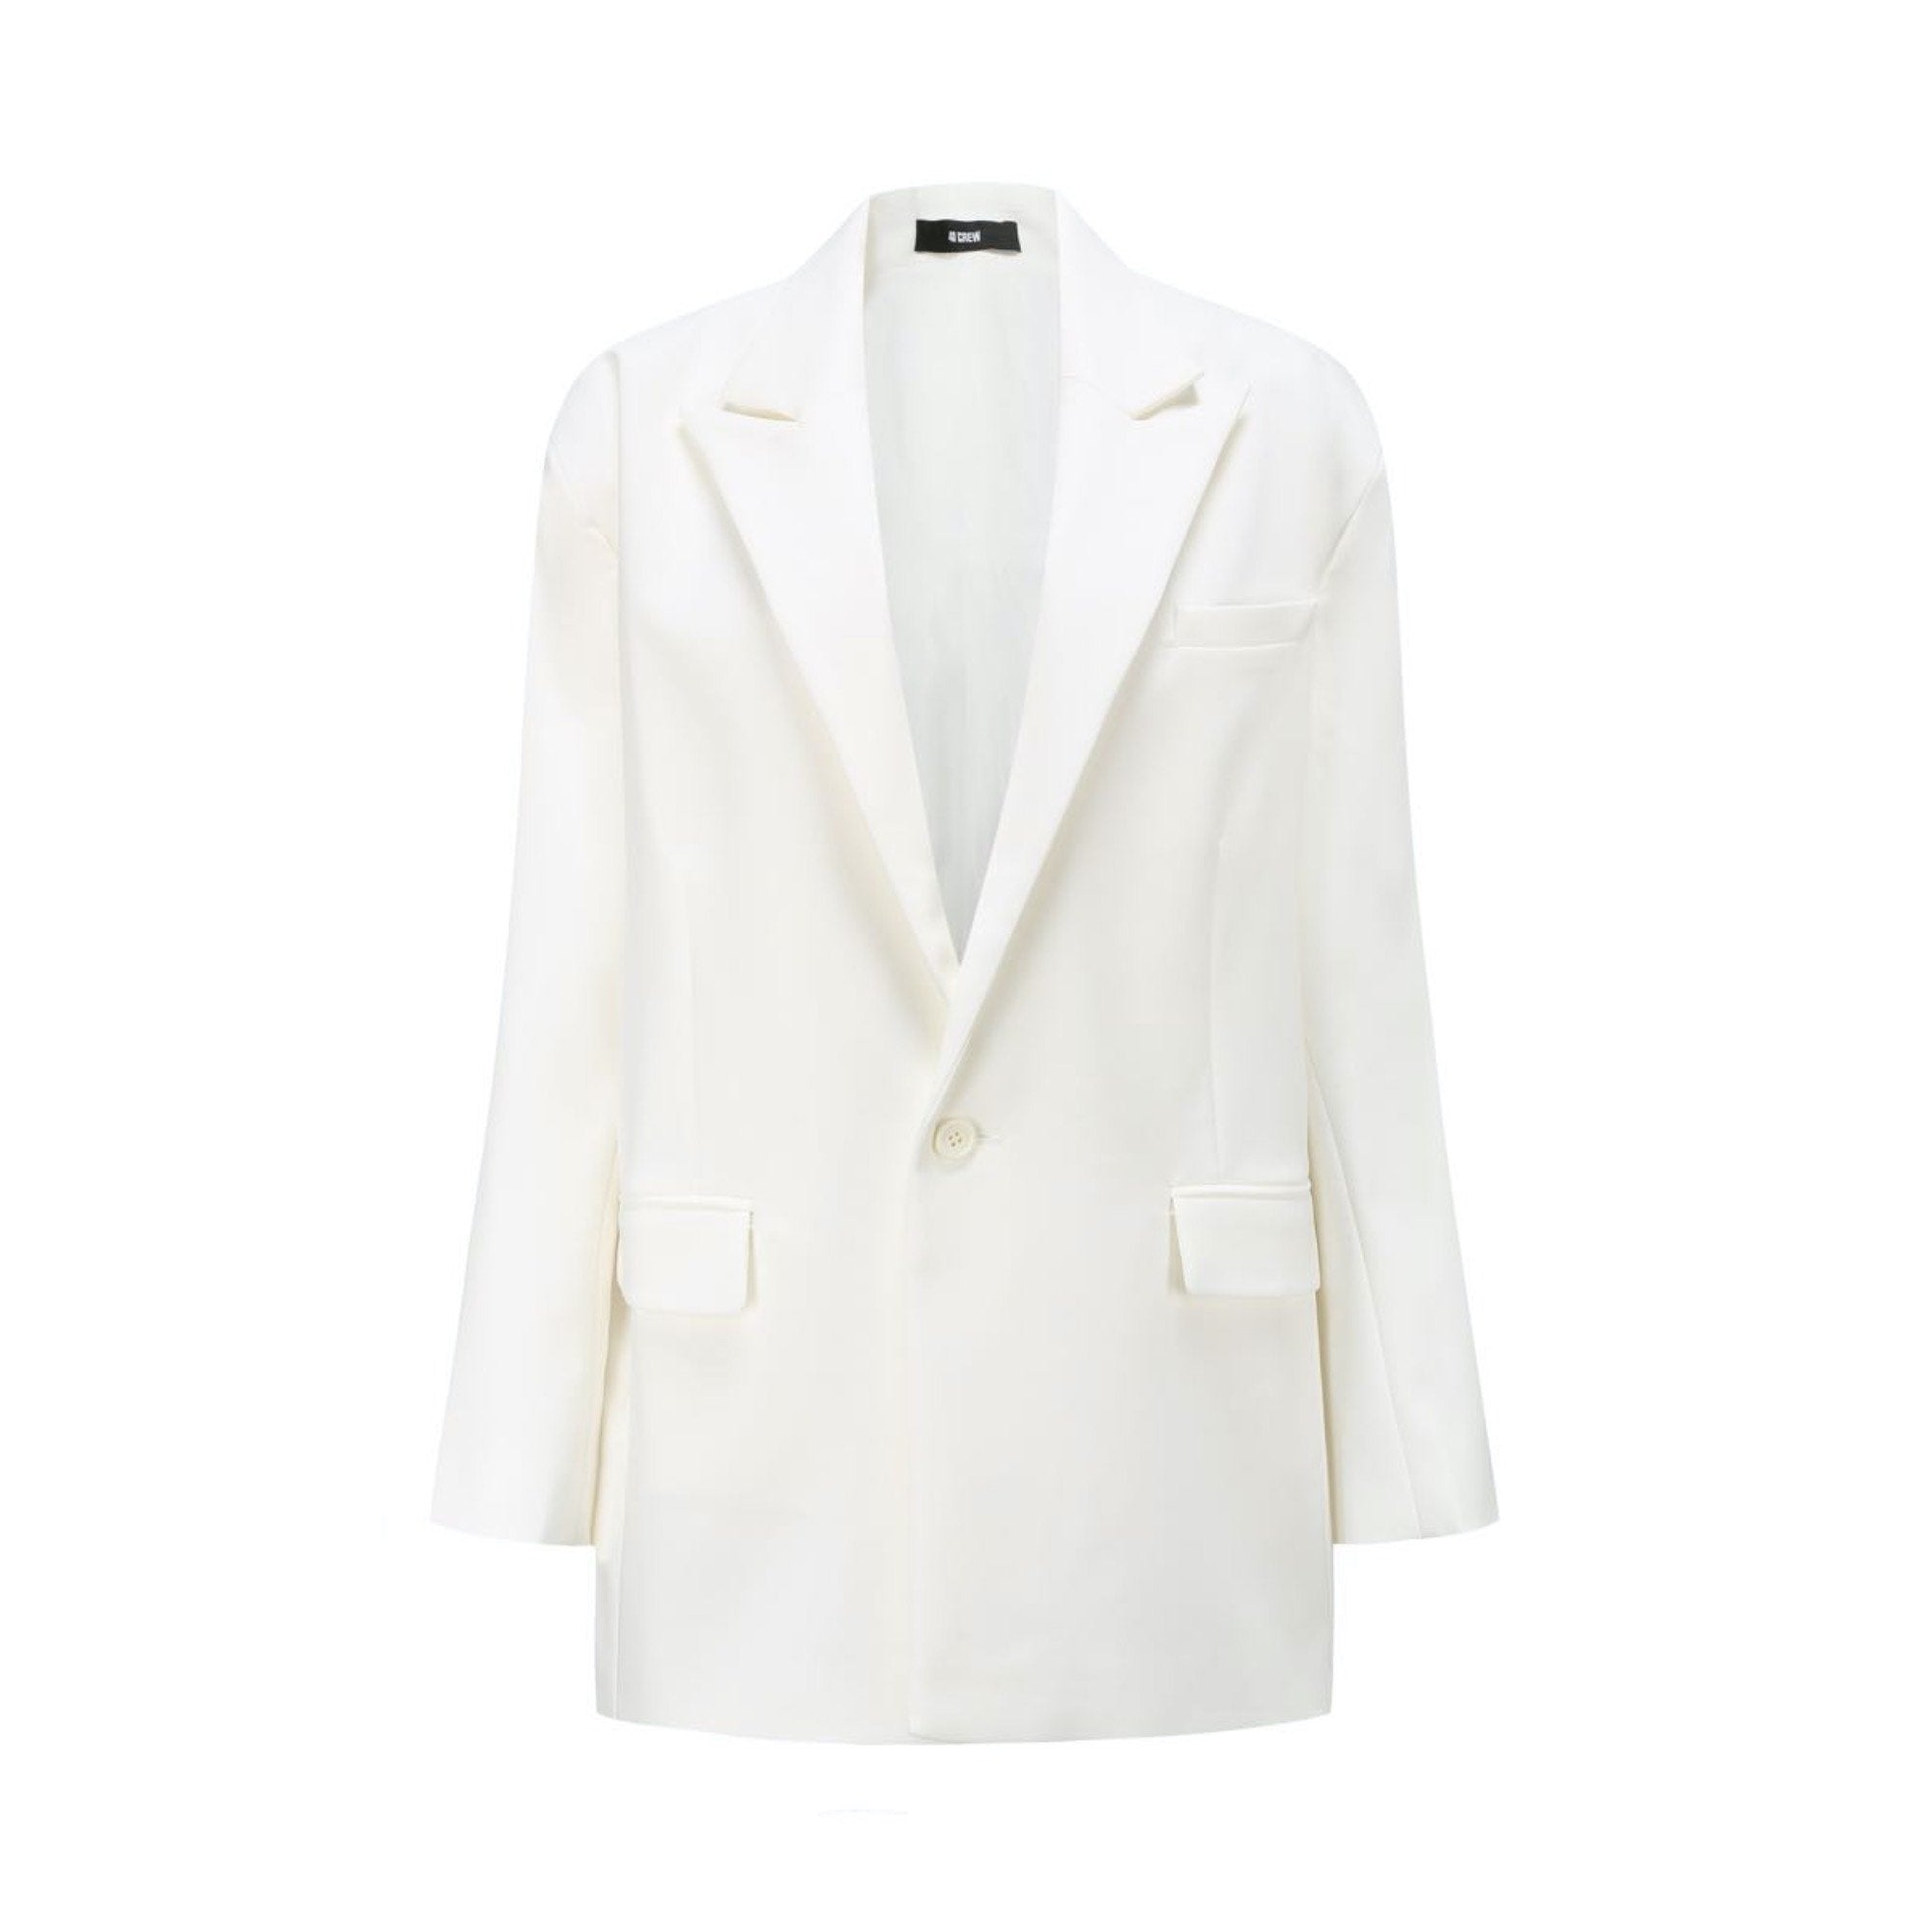 40 CREW White Blazer Jacket | MADA IN CHINA